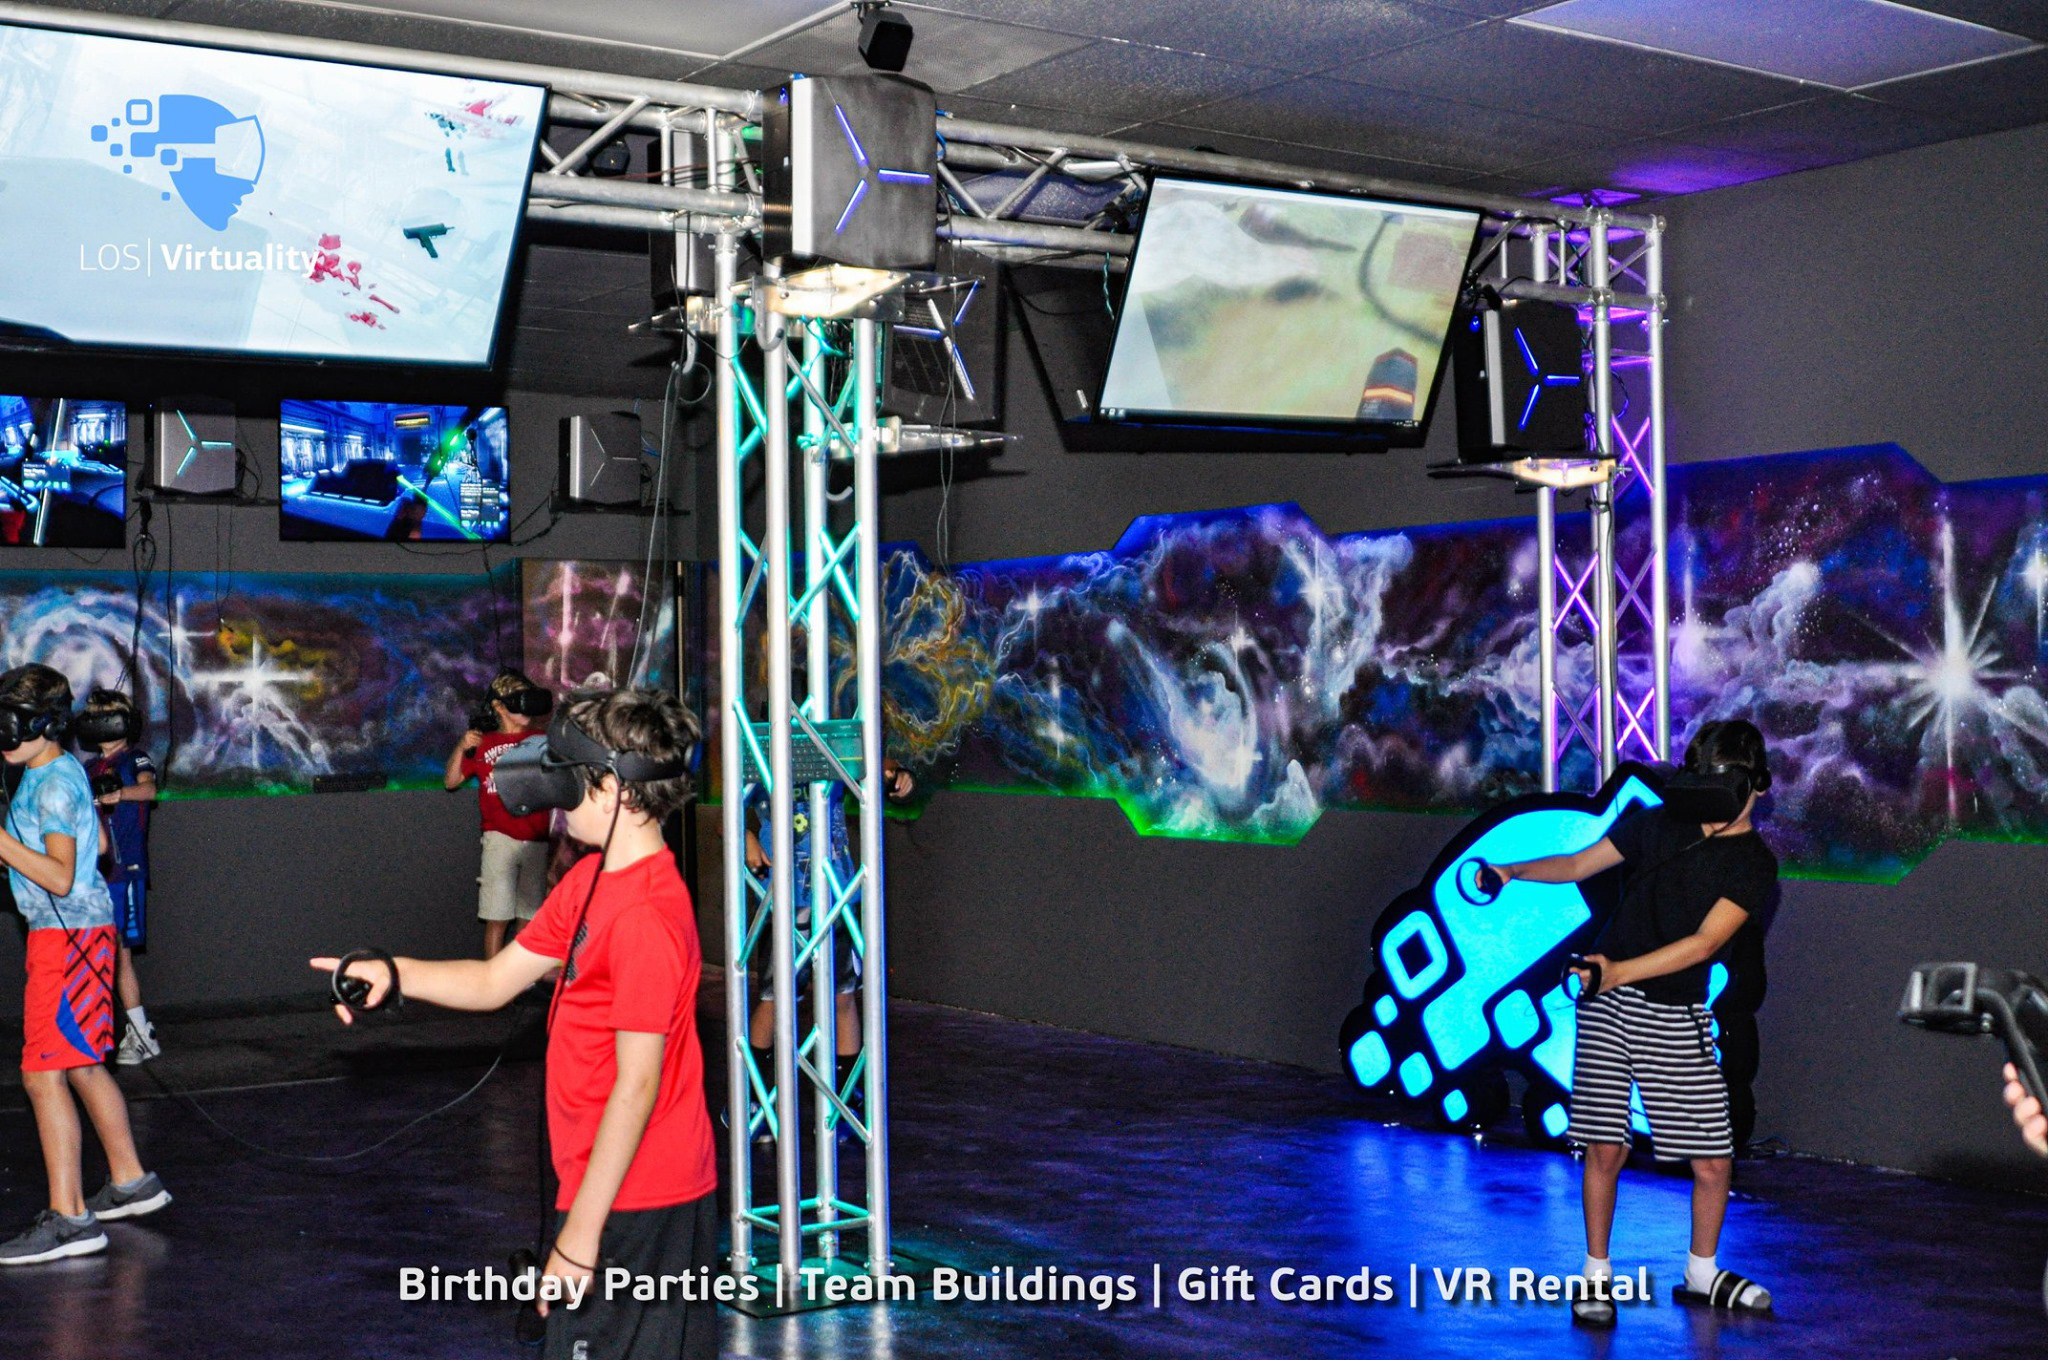 Birthday Party In Virtual Reality - VR Universe - Image 1